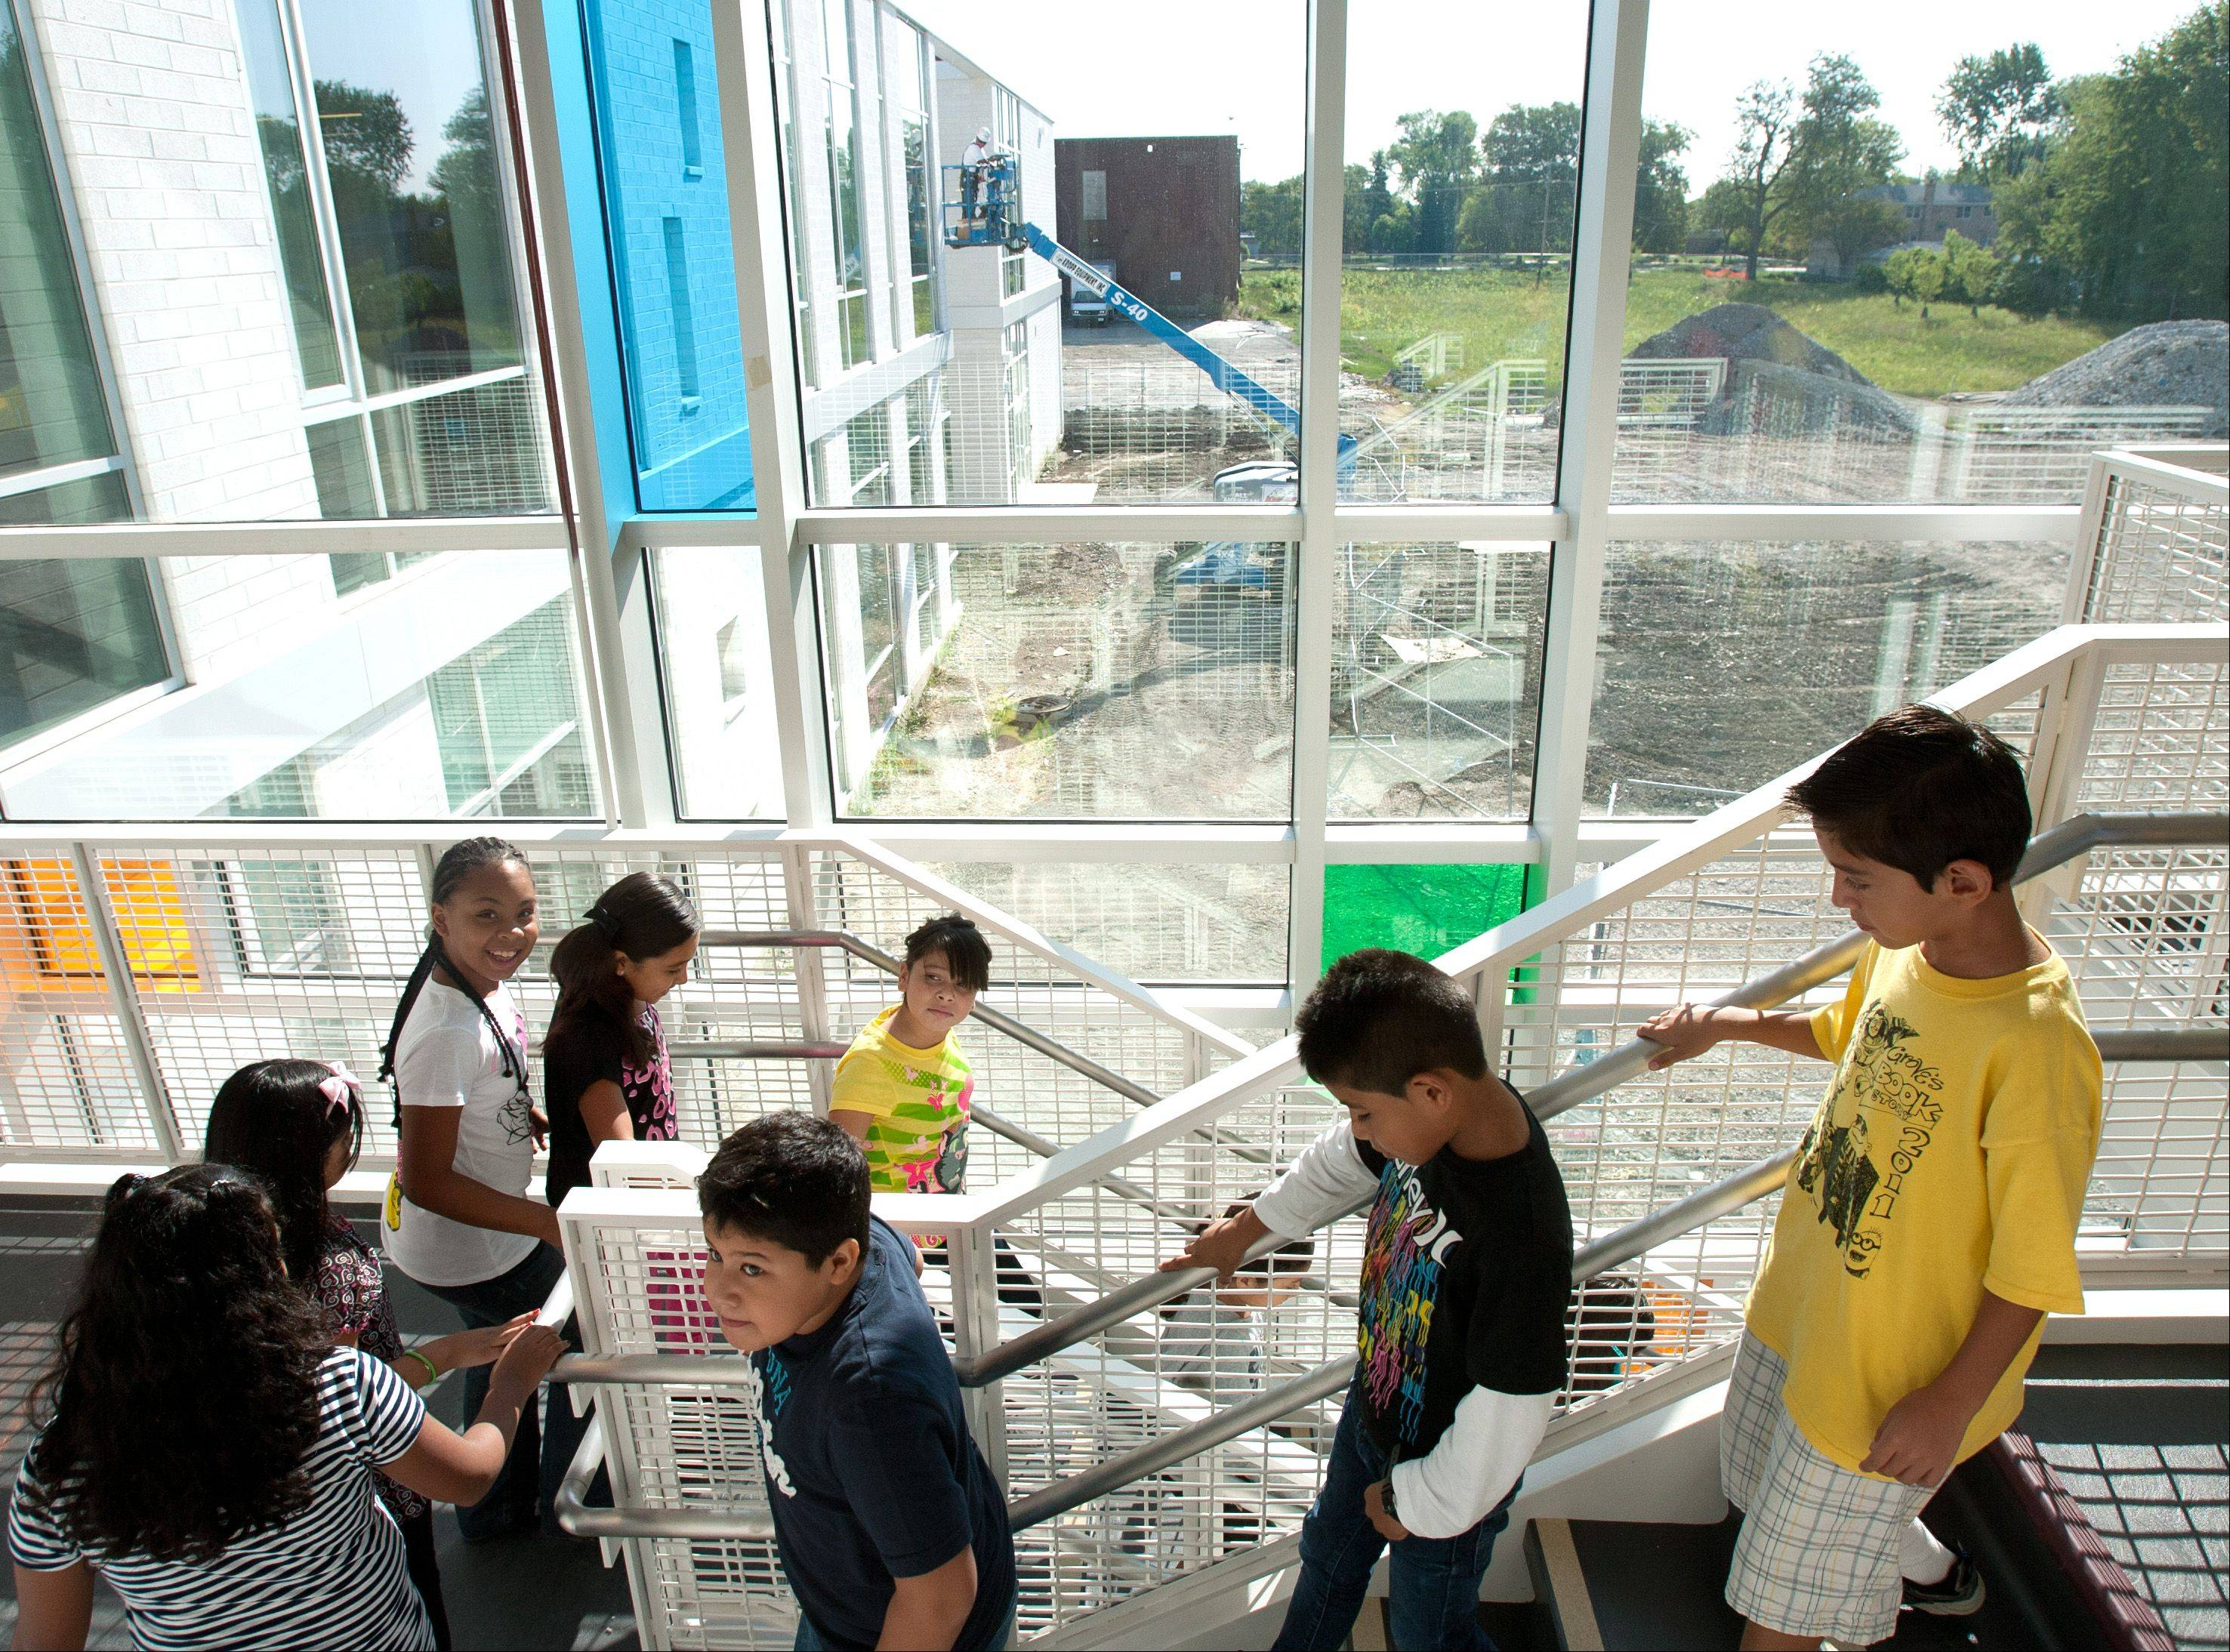 Tioga School students make their way to an assembly inside their new gym during on the first day of school.